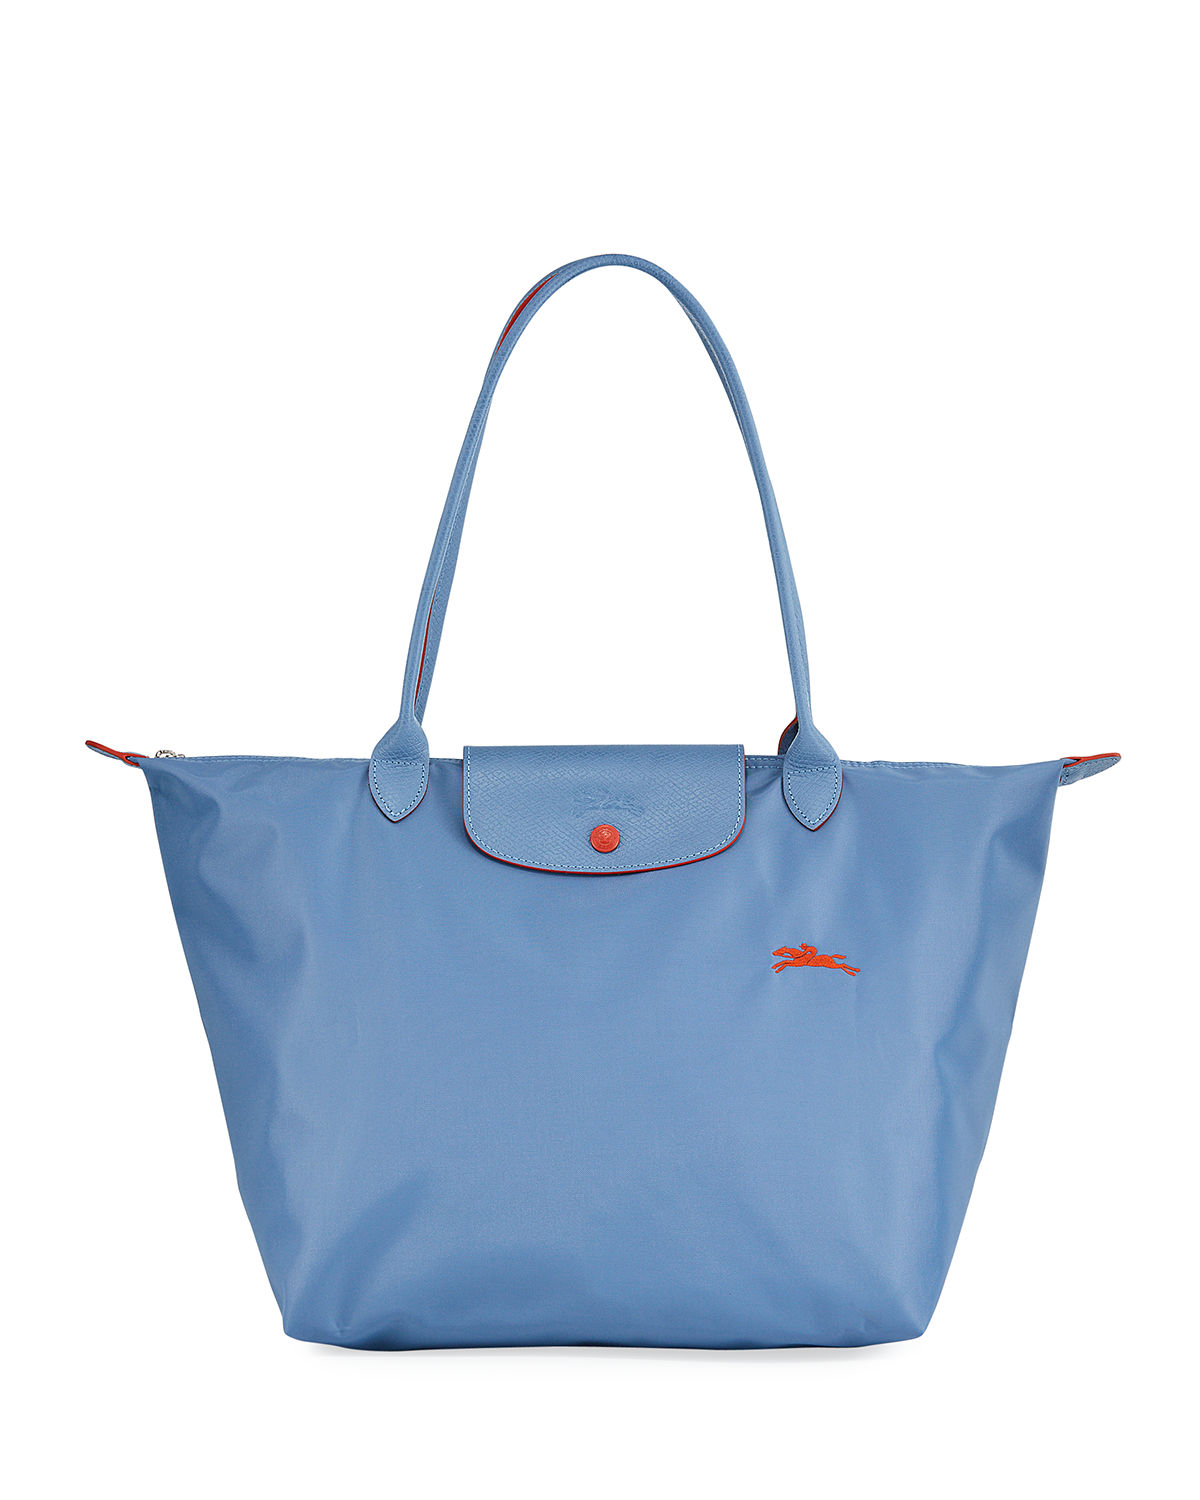 Le Pliage Club Large Nylon Shoulder Tote Bag